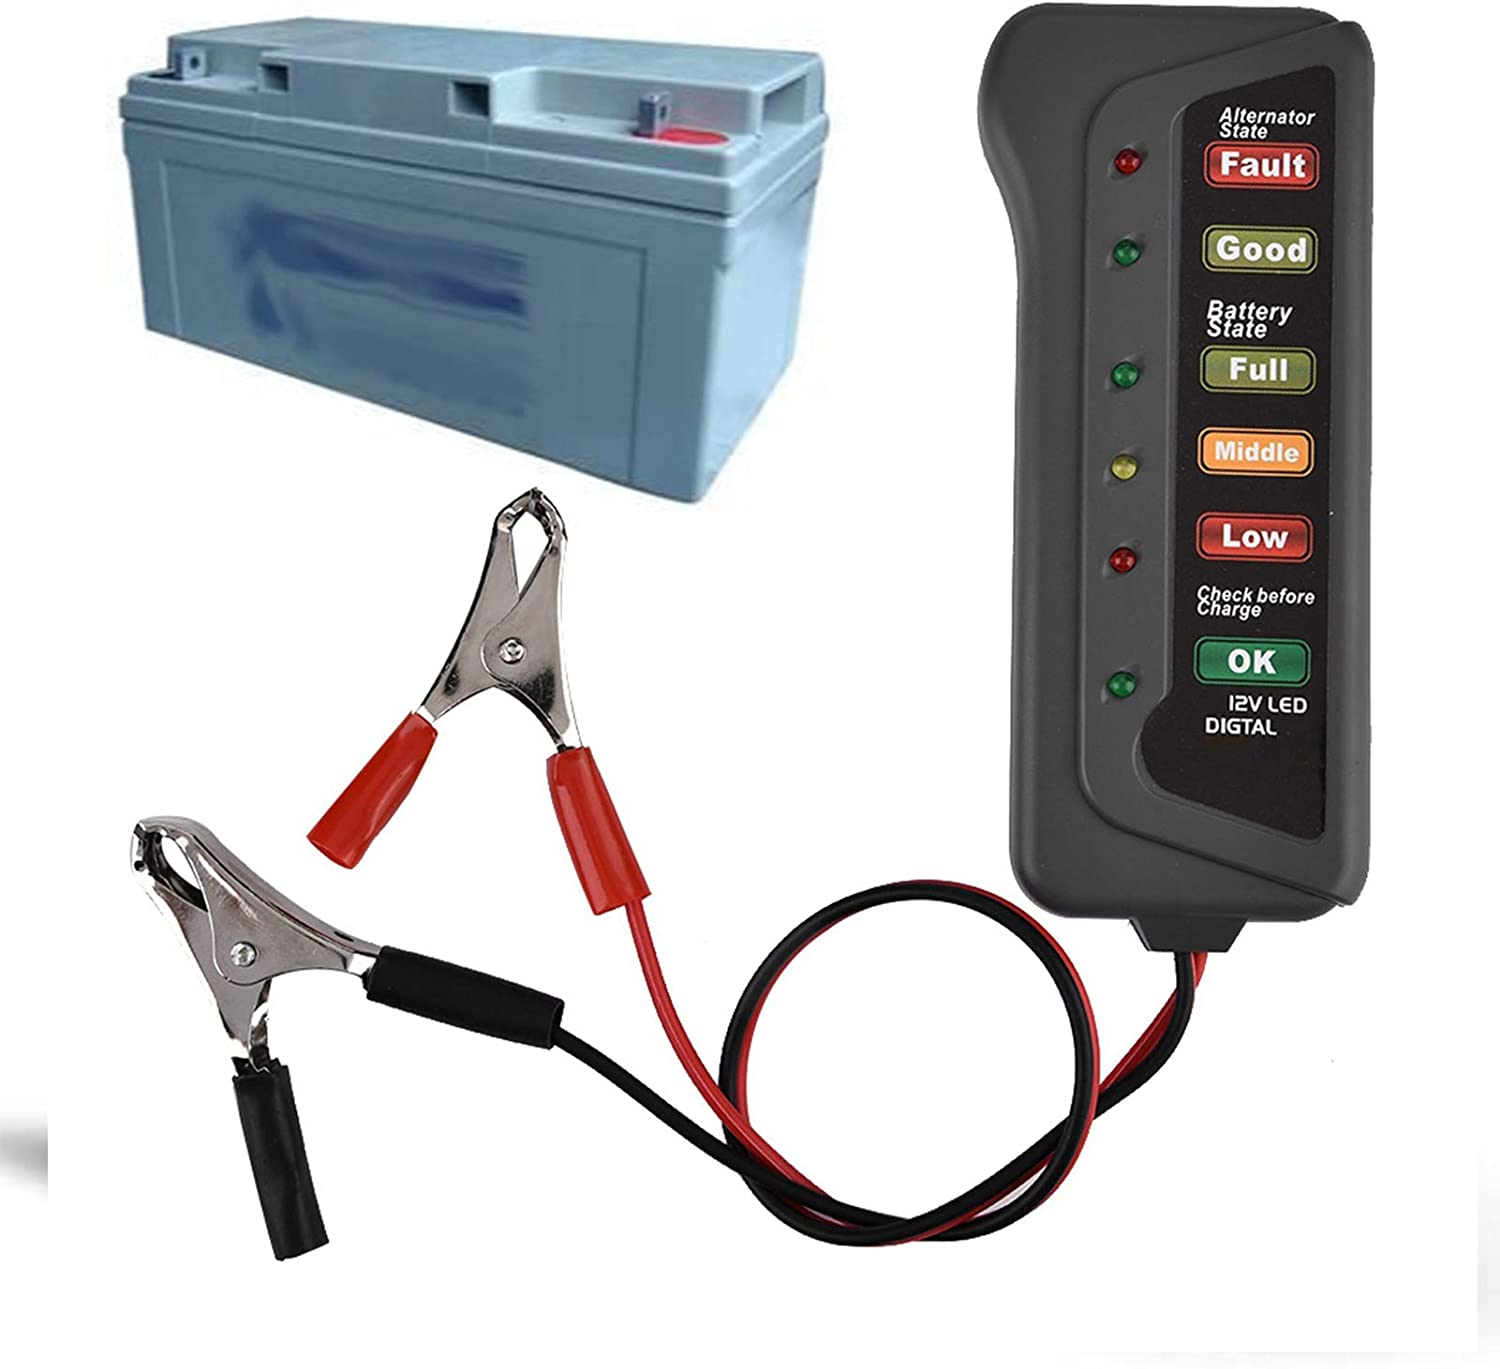 12V Digital Auto Battery Tester and Alternator Tester with Testing Clips Battery Load Tester Analyzer LED Indication for Cars Motorcycles Trucks DaMohony Car Battery Tester Analyzer